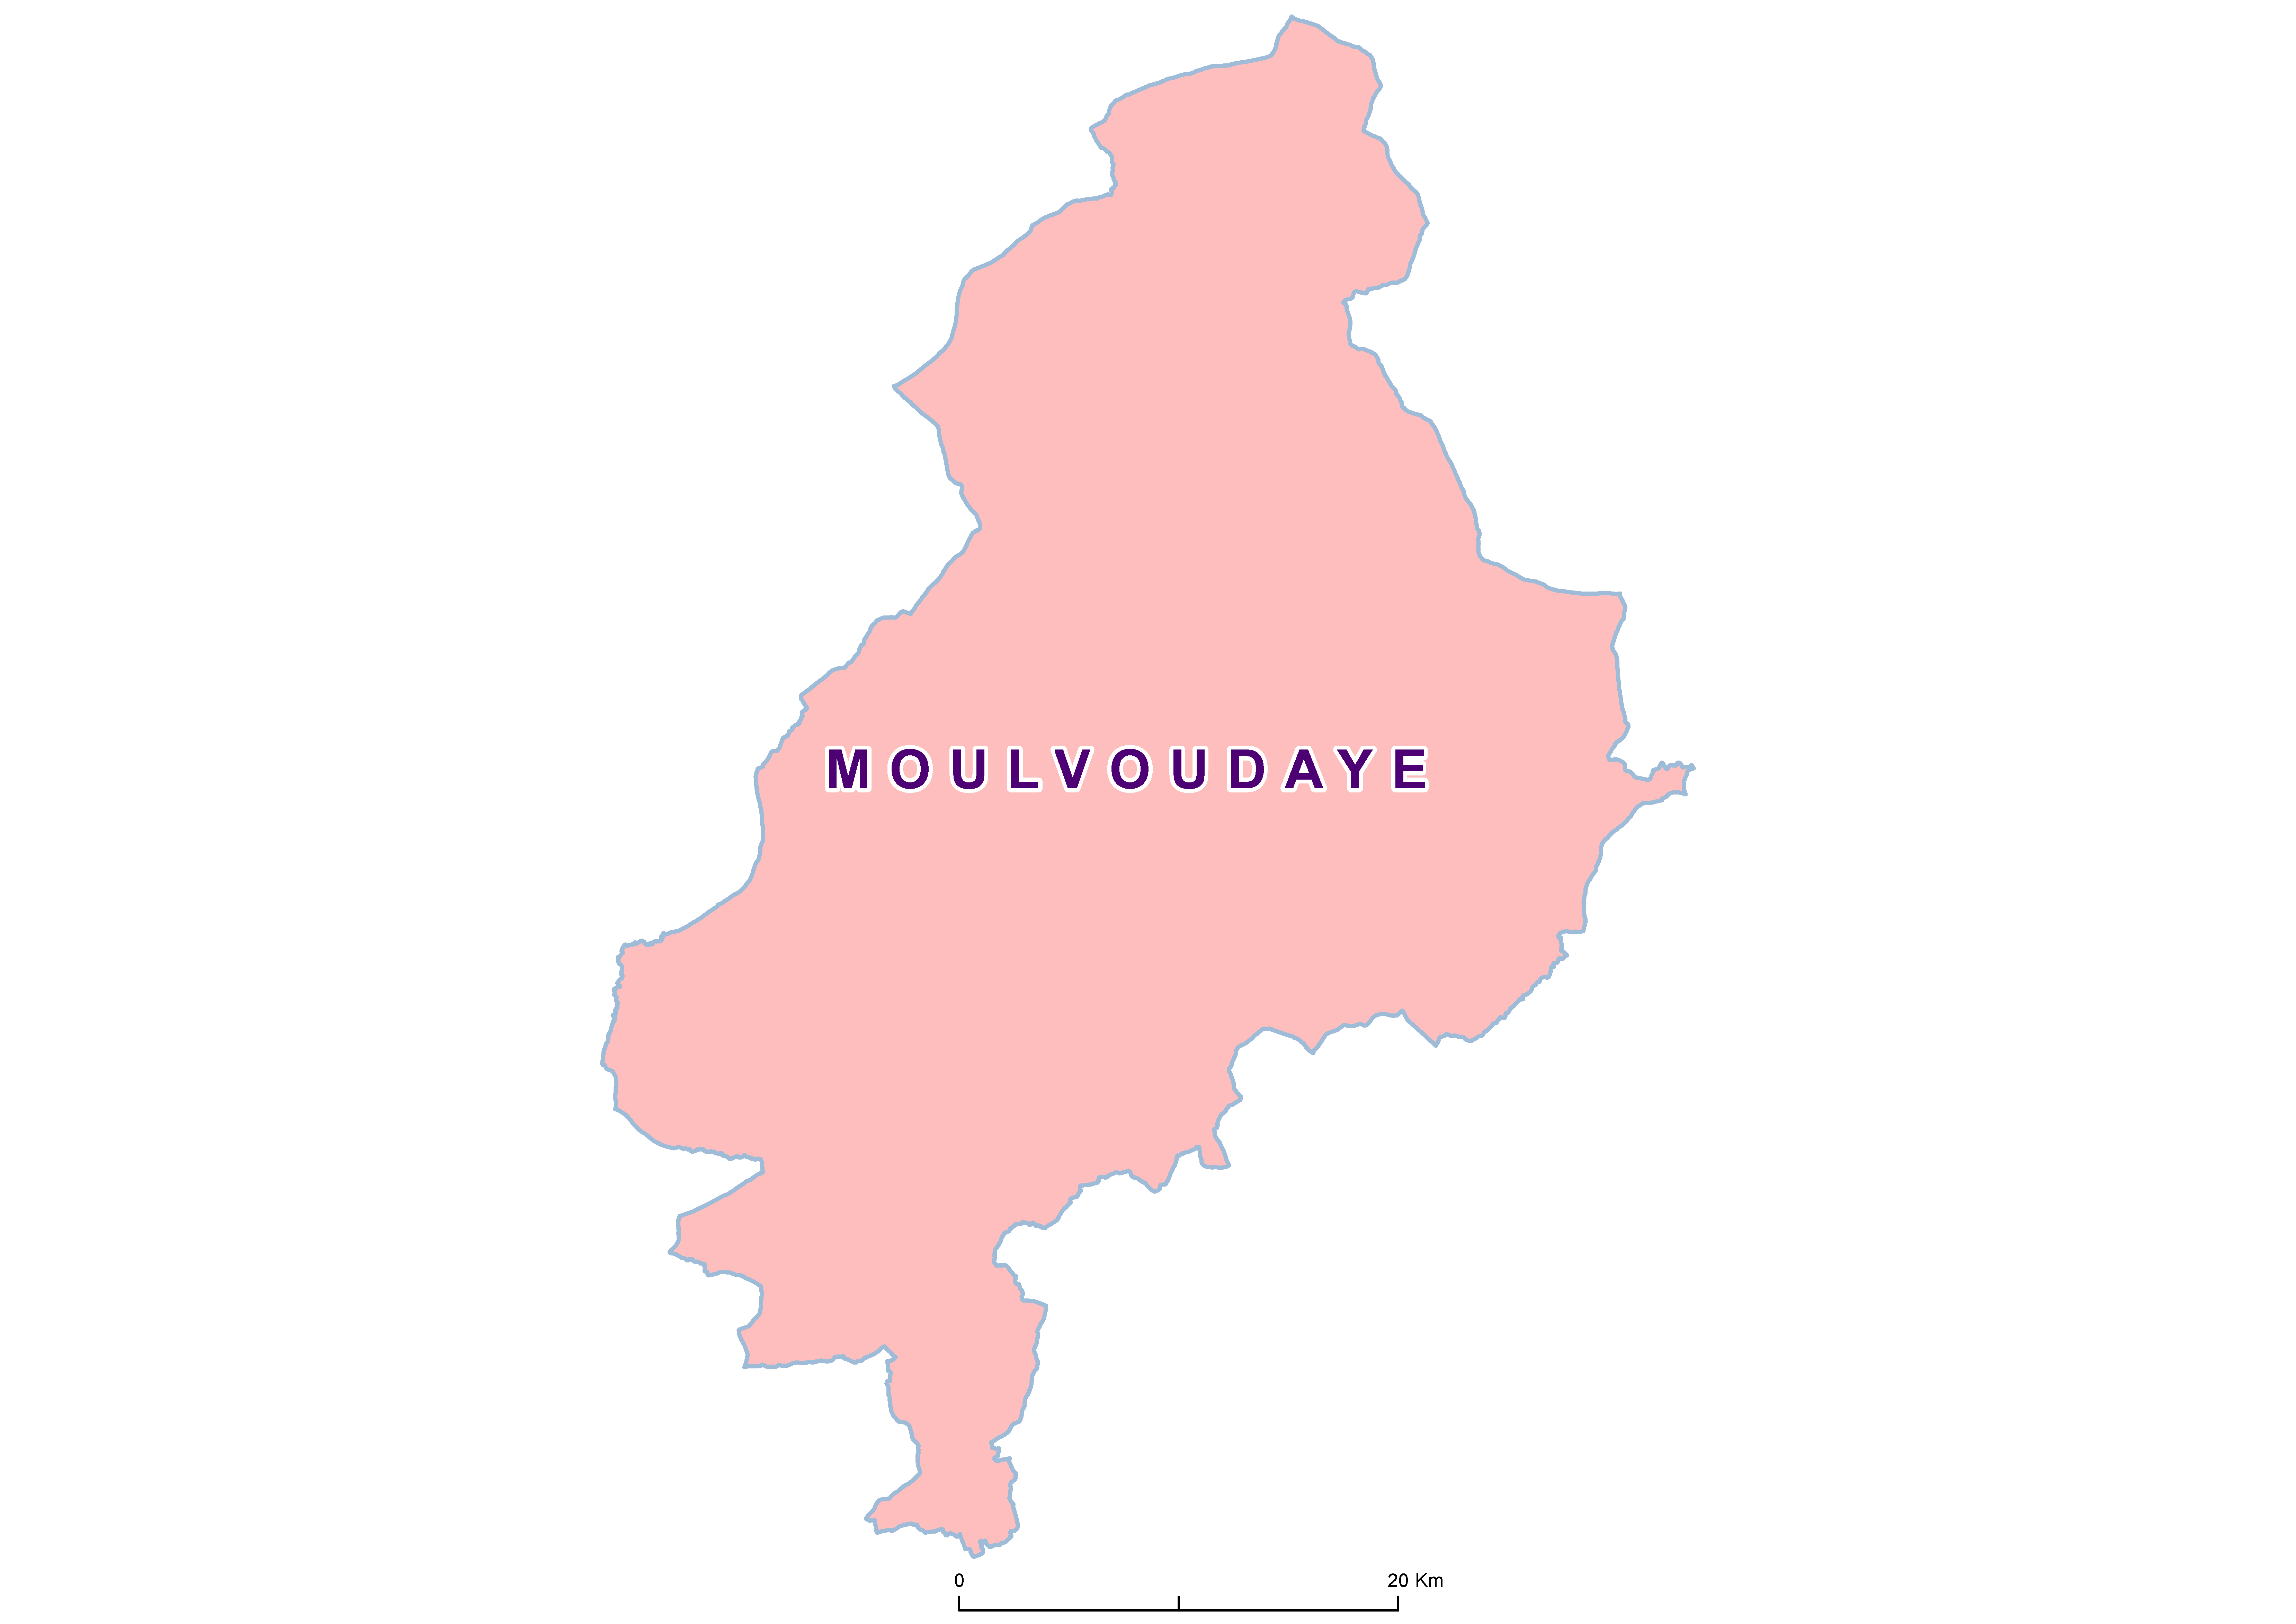 Moulvoudaye Mean STH 19850001